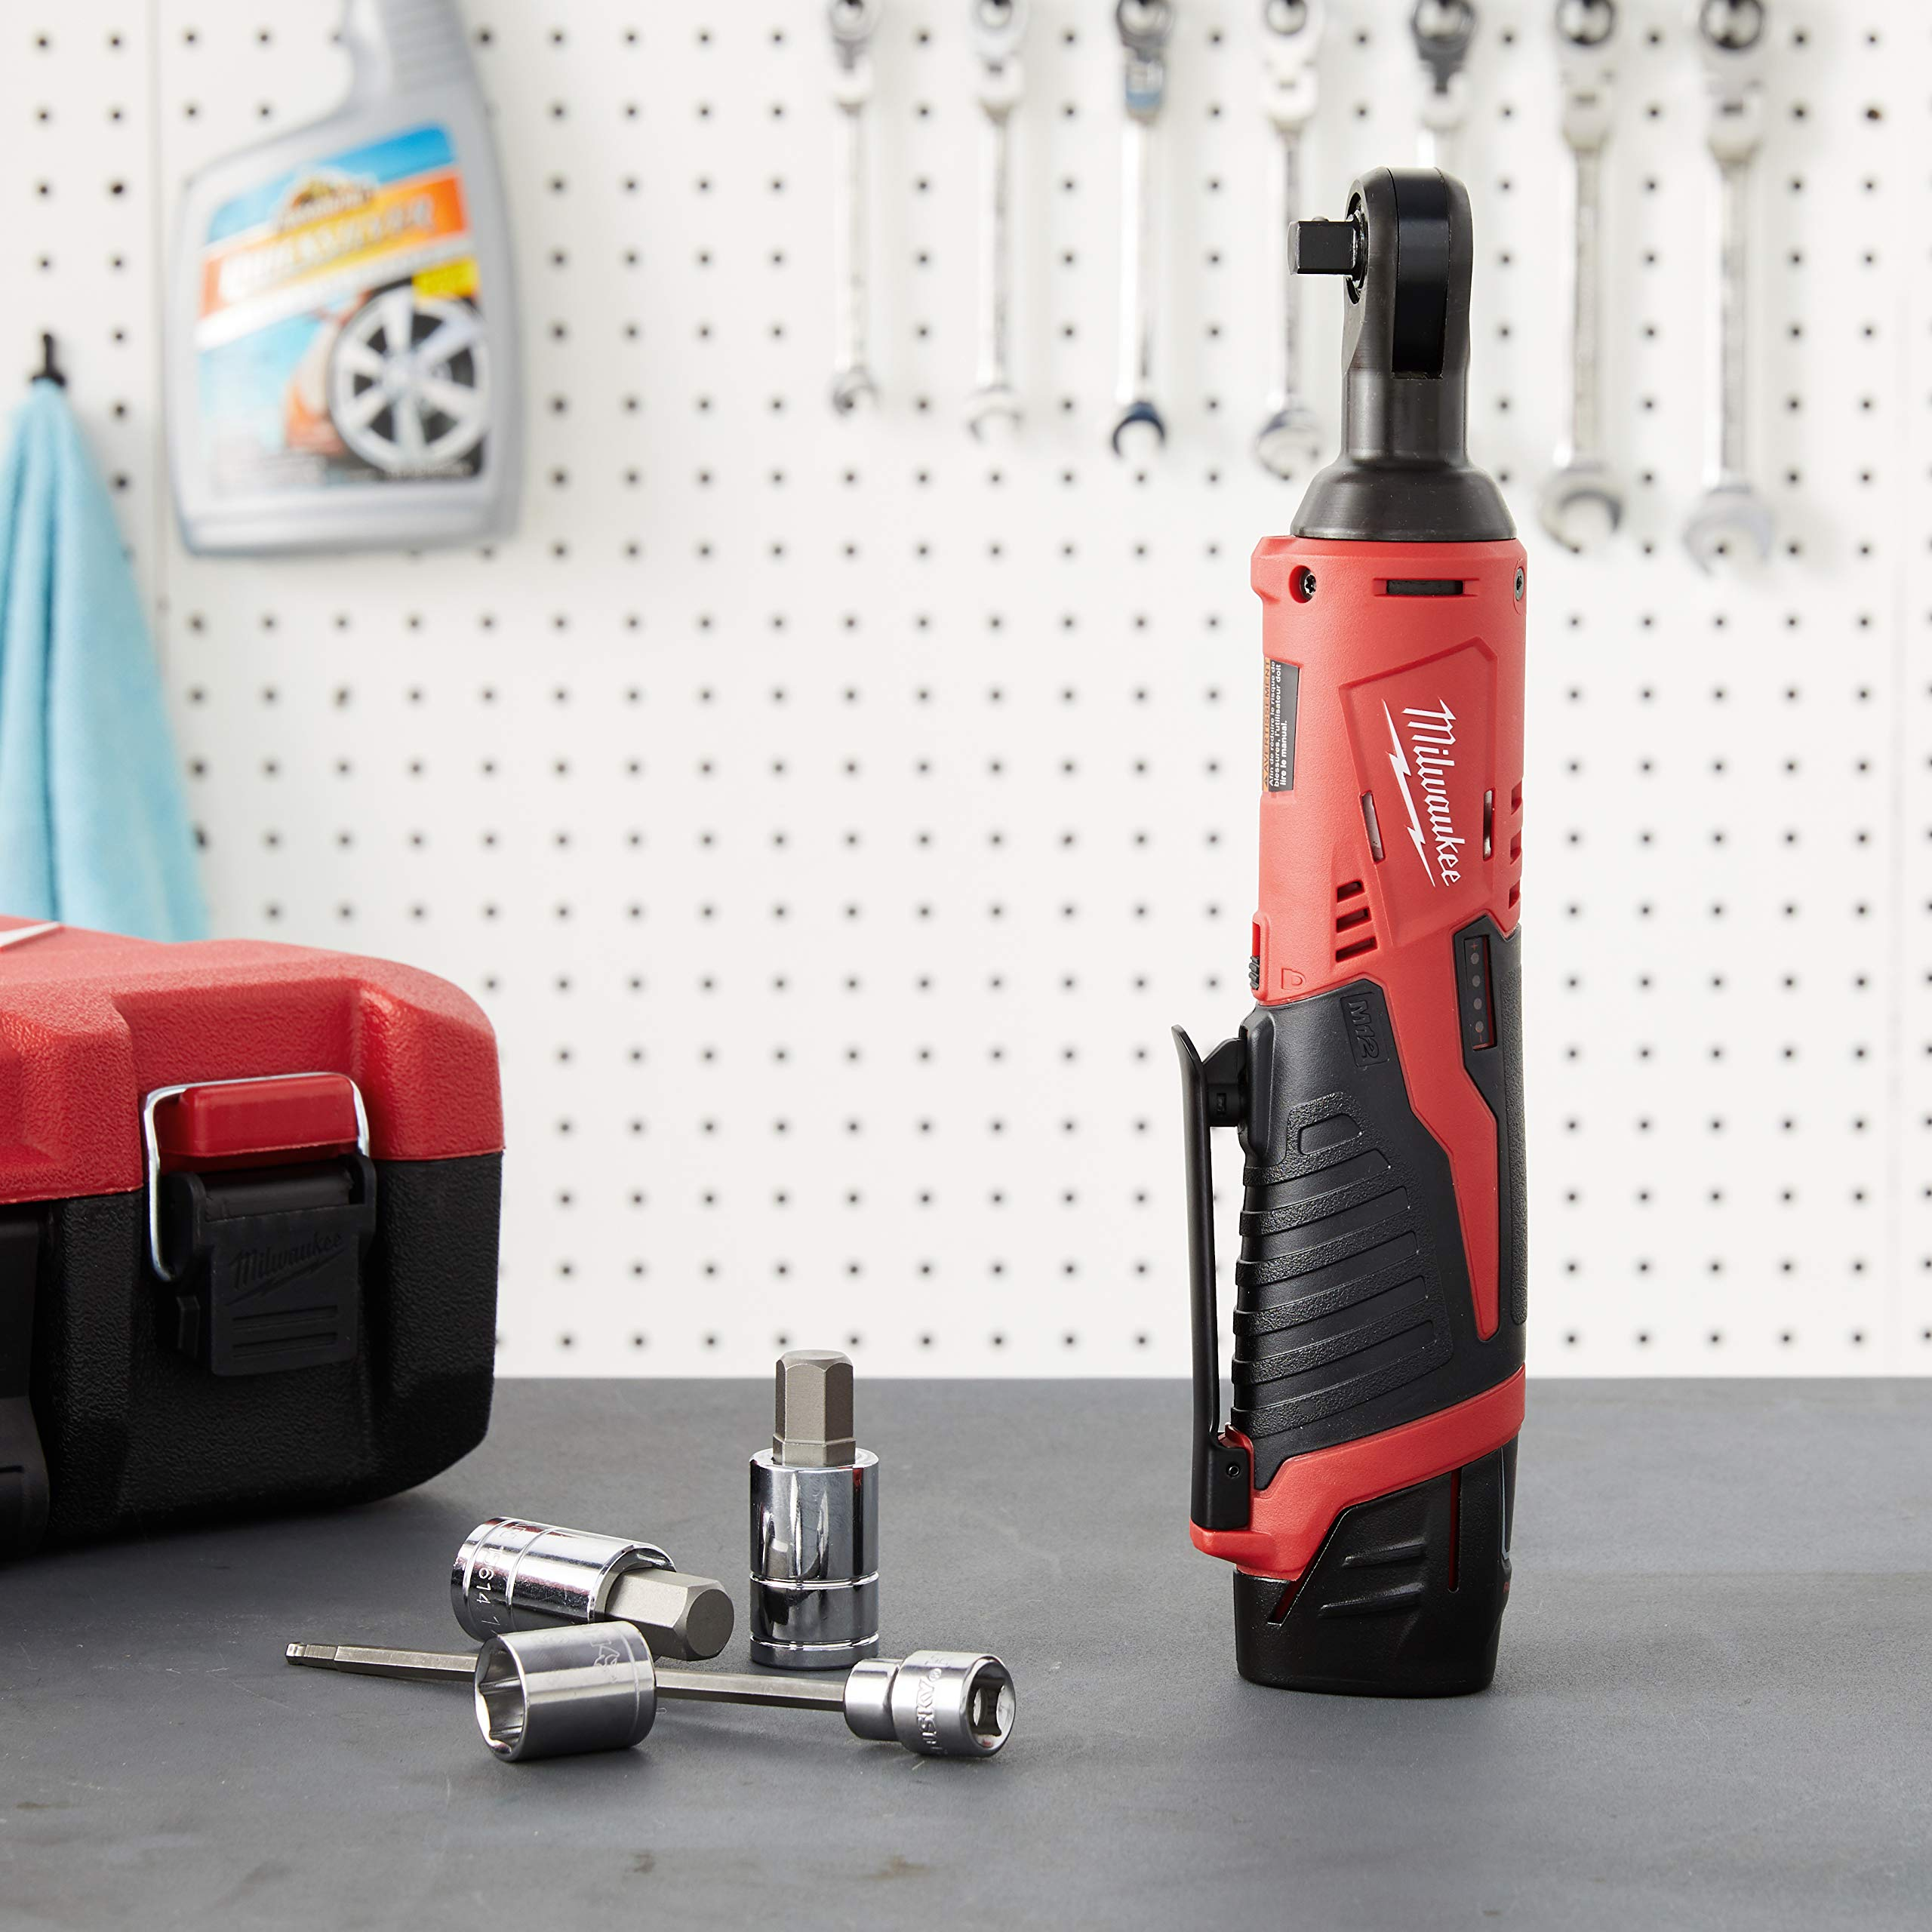 """MILWAUKEE 2457-20 M12 Cordless 3/8"""" Sub-Compact 35 ft-Lbs 250 RPM Ratchet w/ Variable Speed Trigger"""